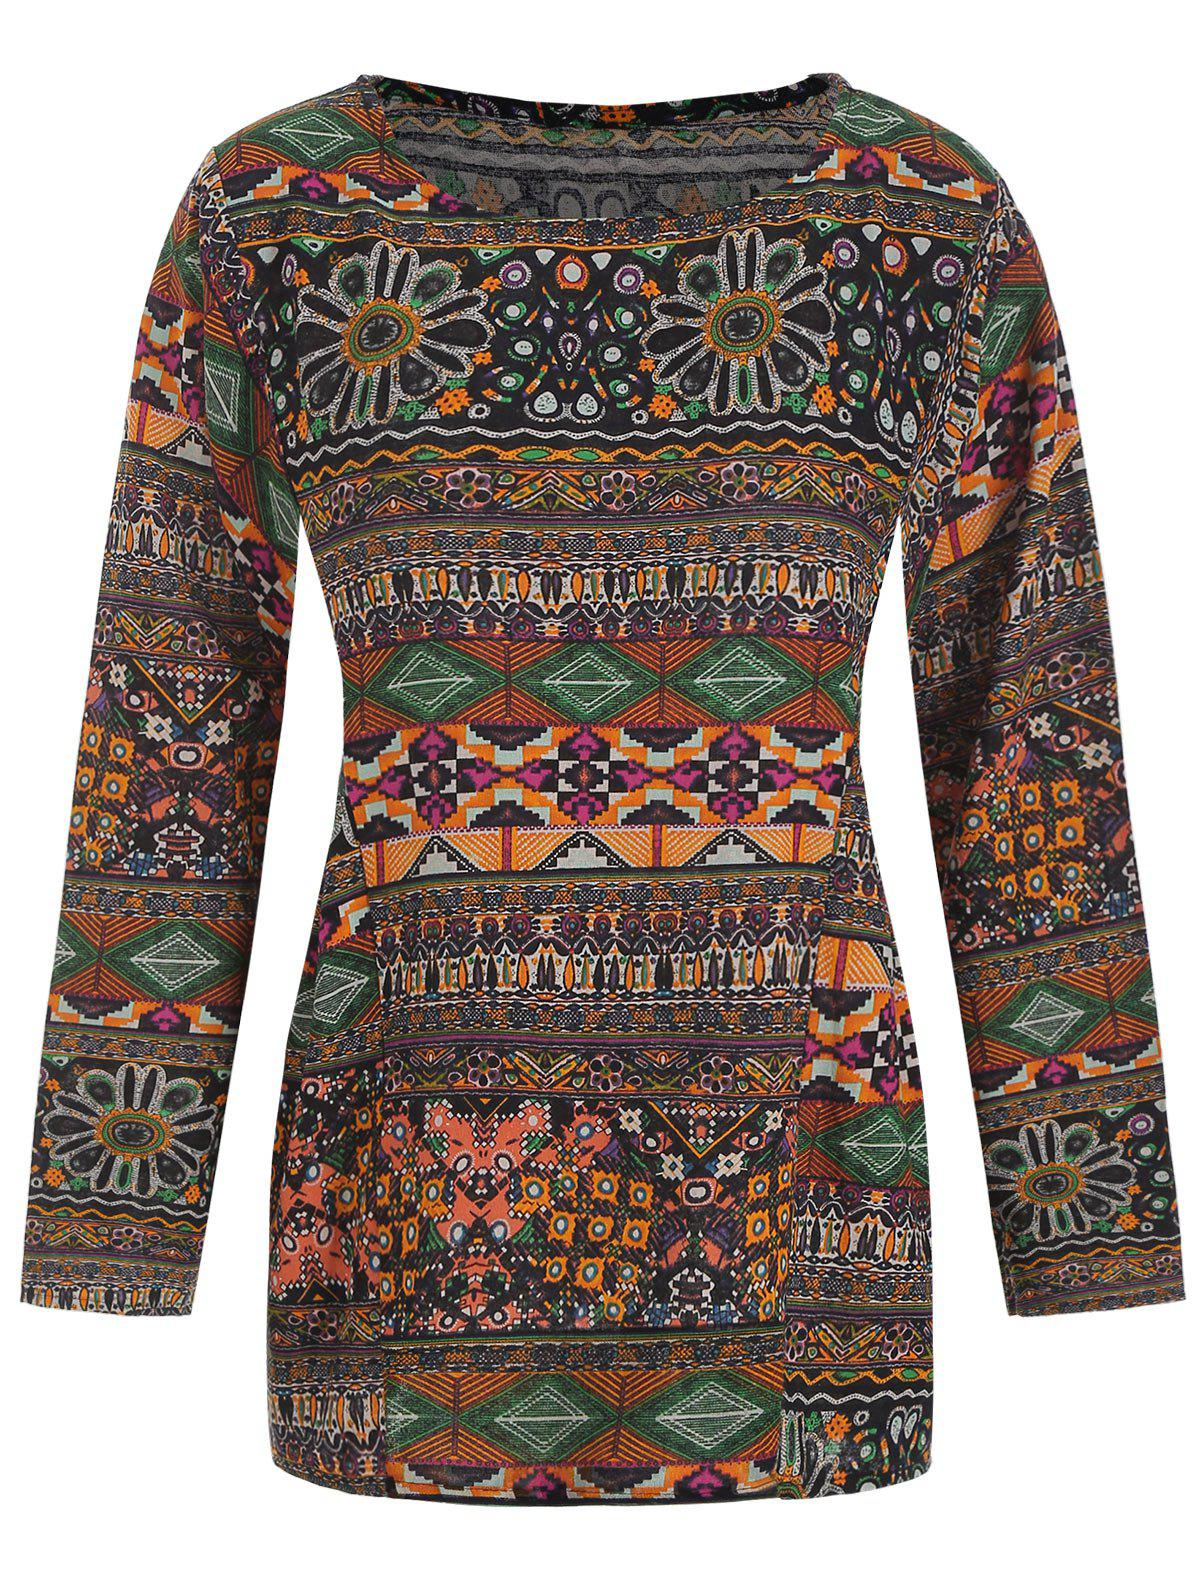 Long Sleeves Tribal Print Loose Blouse - multicolor A XL